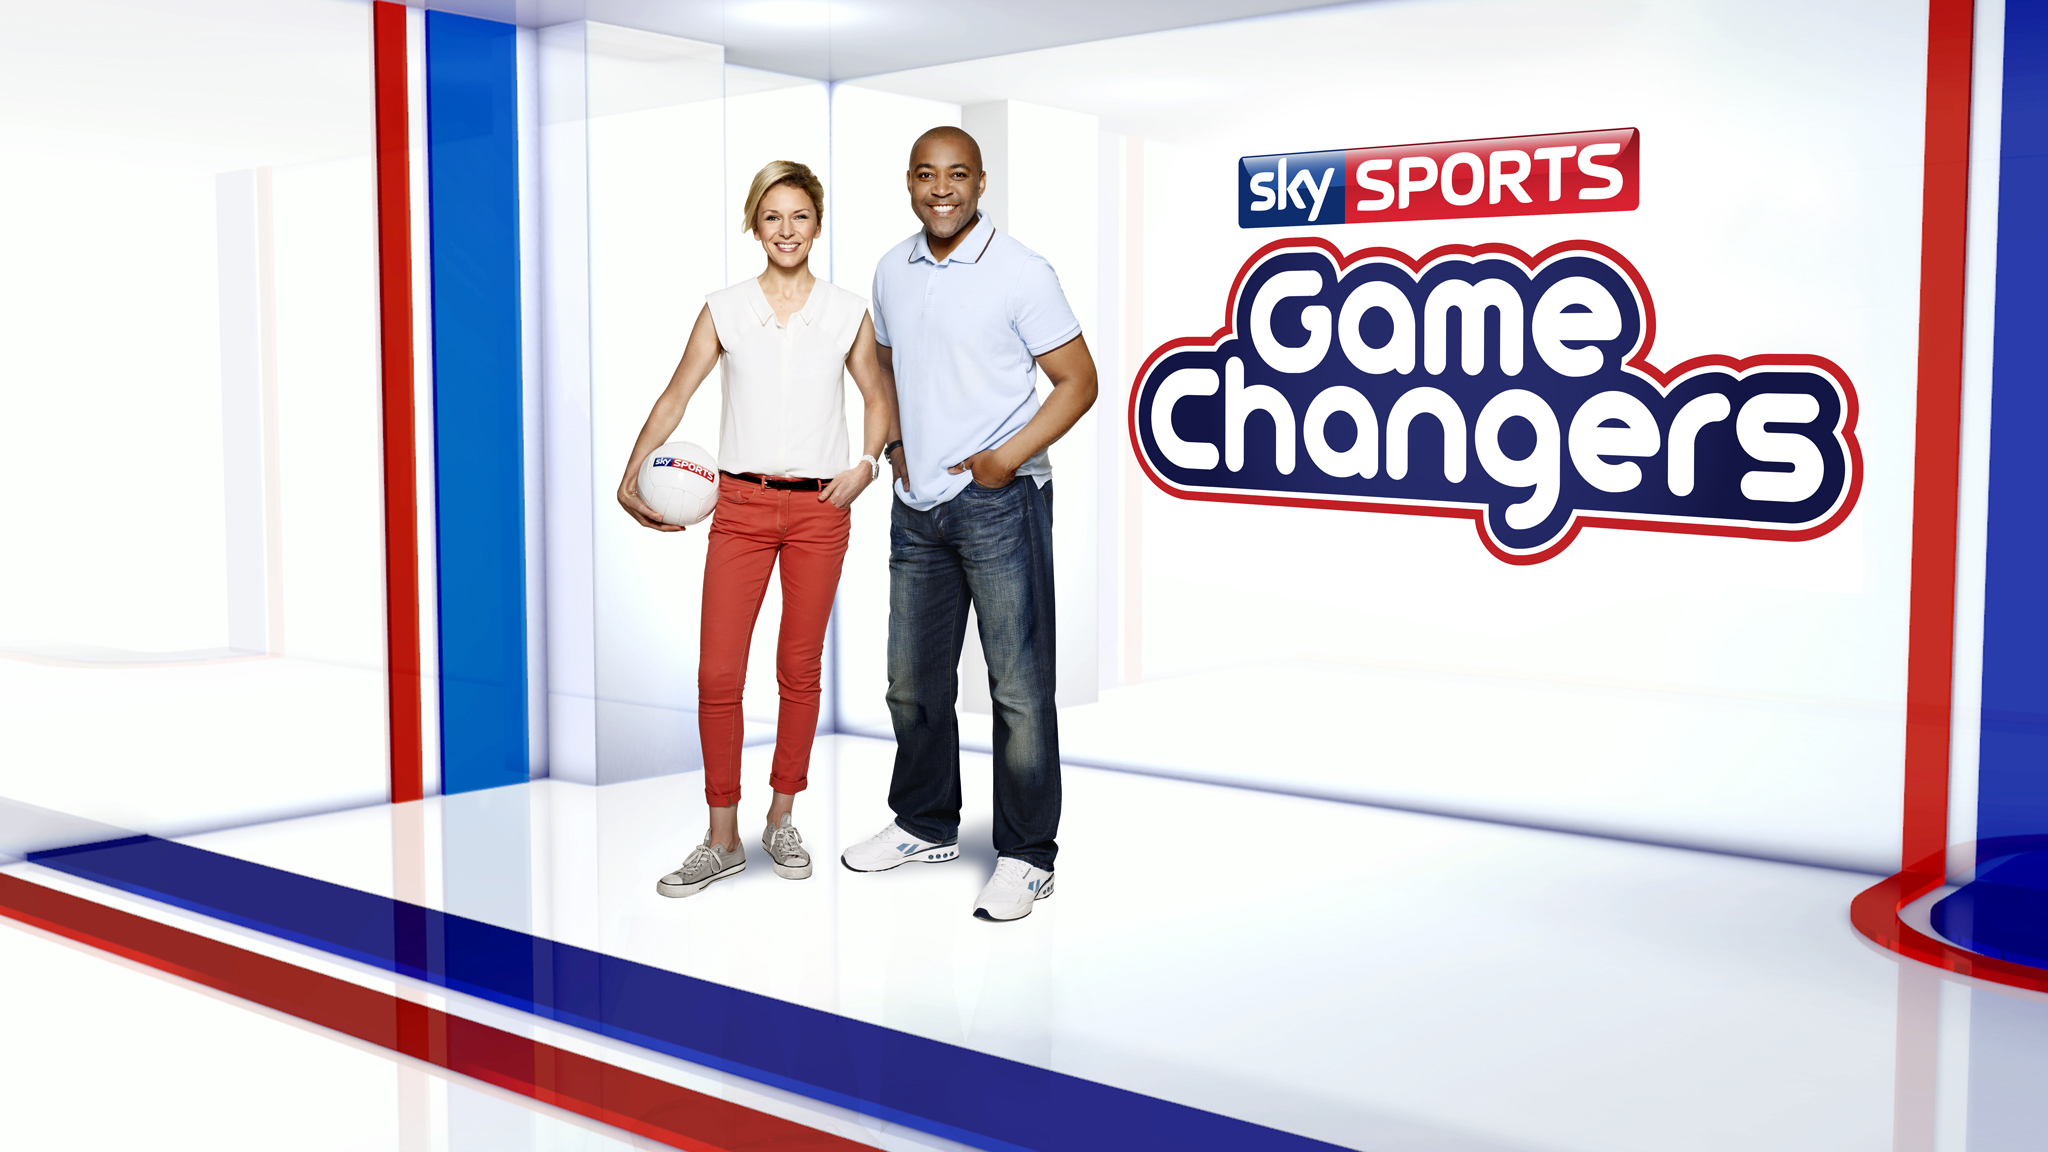 Sky-Sports-Game-Changers.jpg